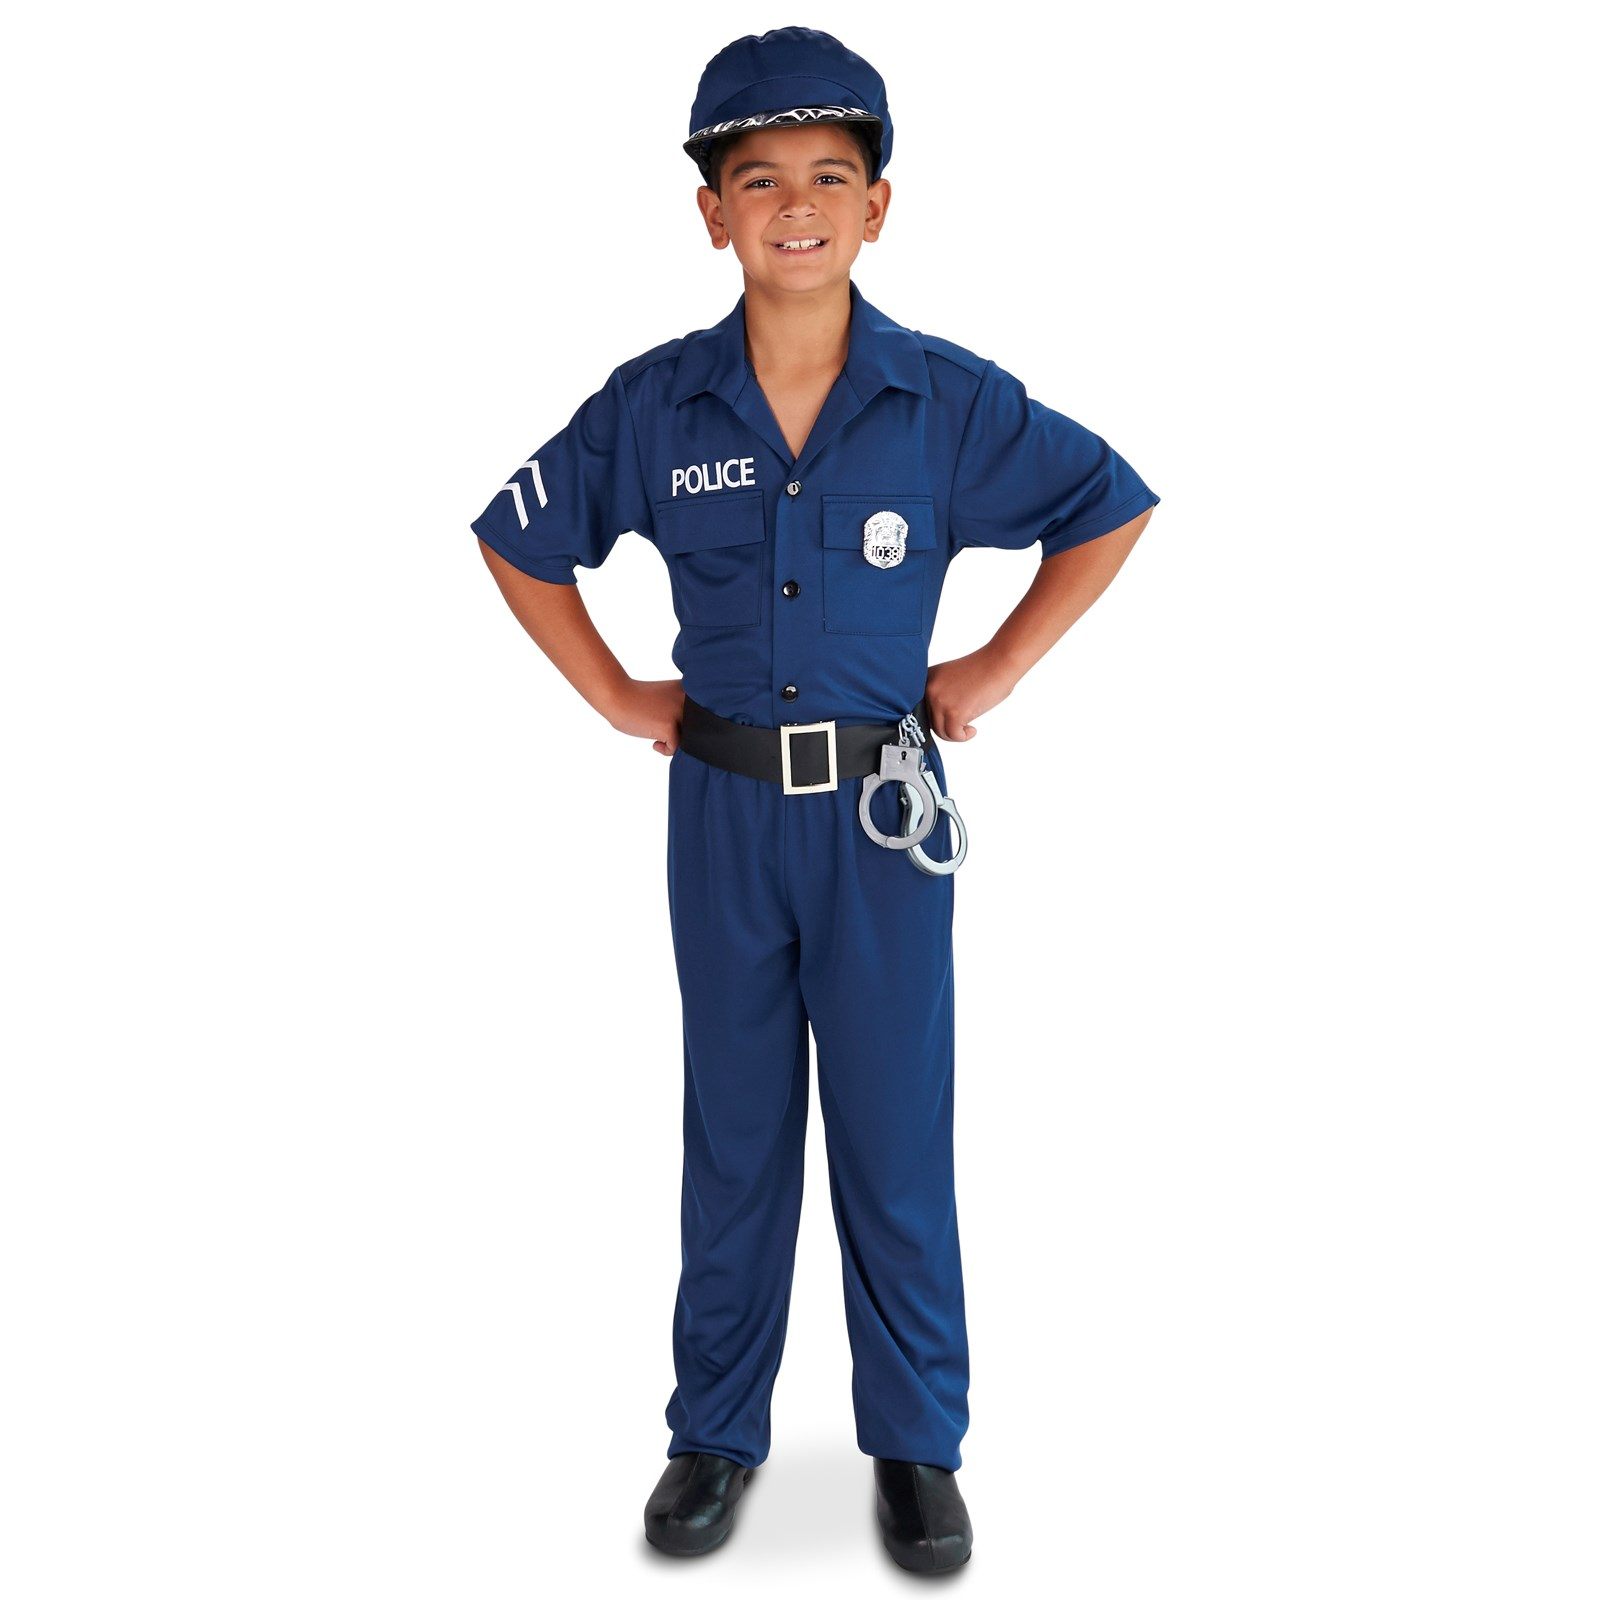 Police Officer & Criminal Costumes | BuyCostumes.com